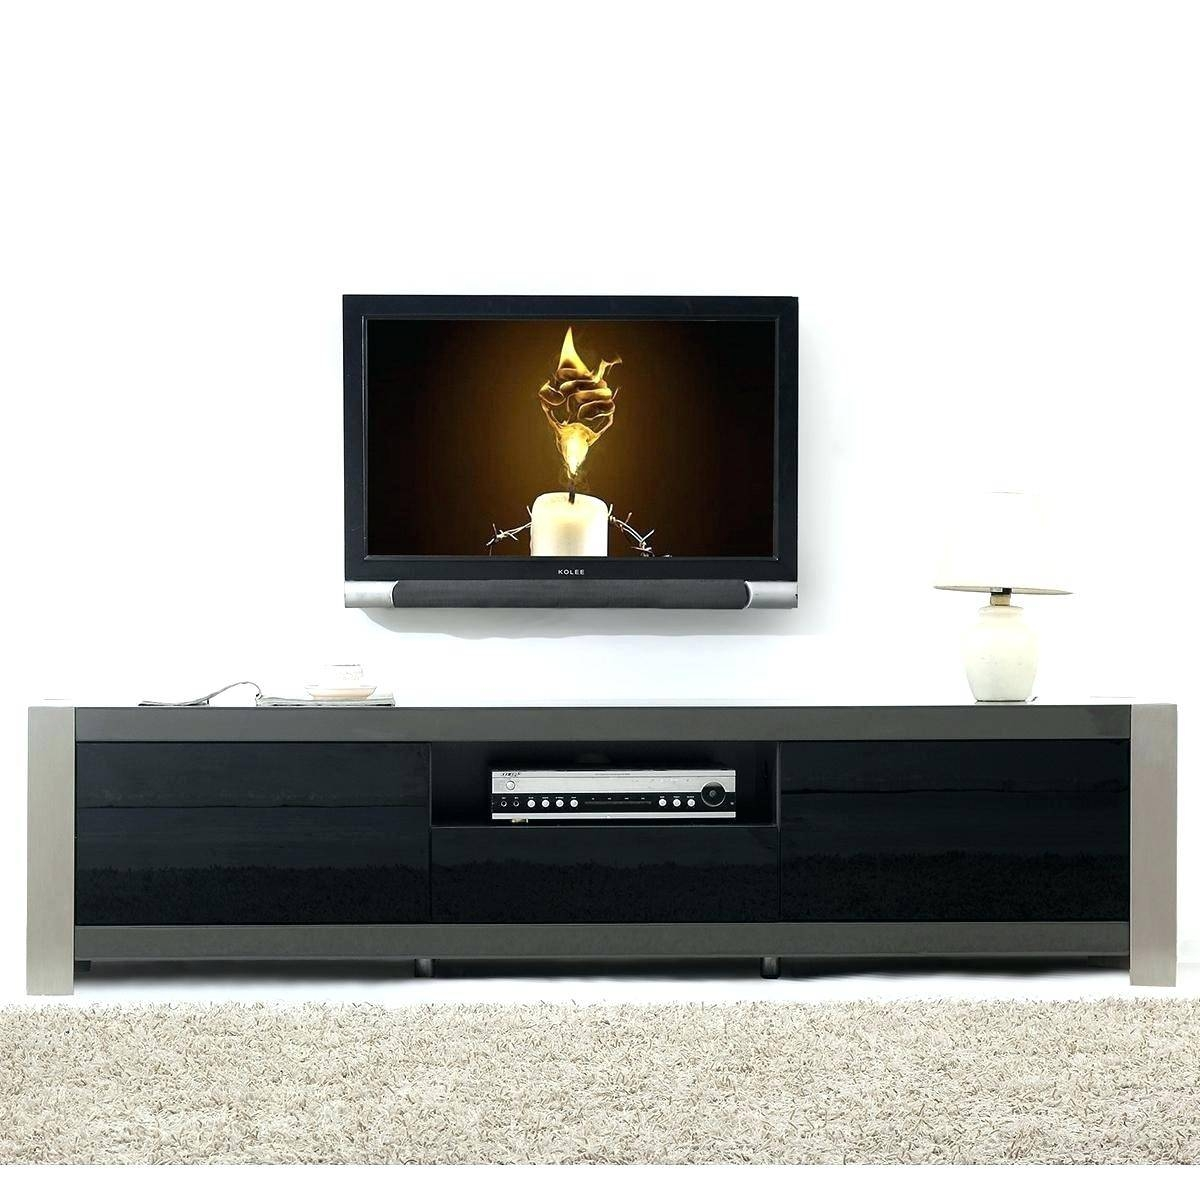 Tv Stand : 100 Tv Stands Tempered Glass Tv Stand Clear Glass Tv pertaining to Modern Glass Tv Stands (Image 8 of 15)